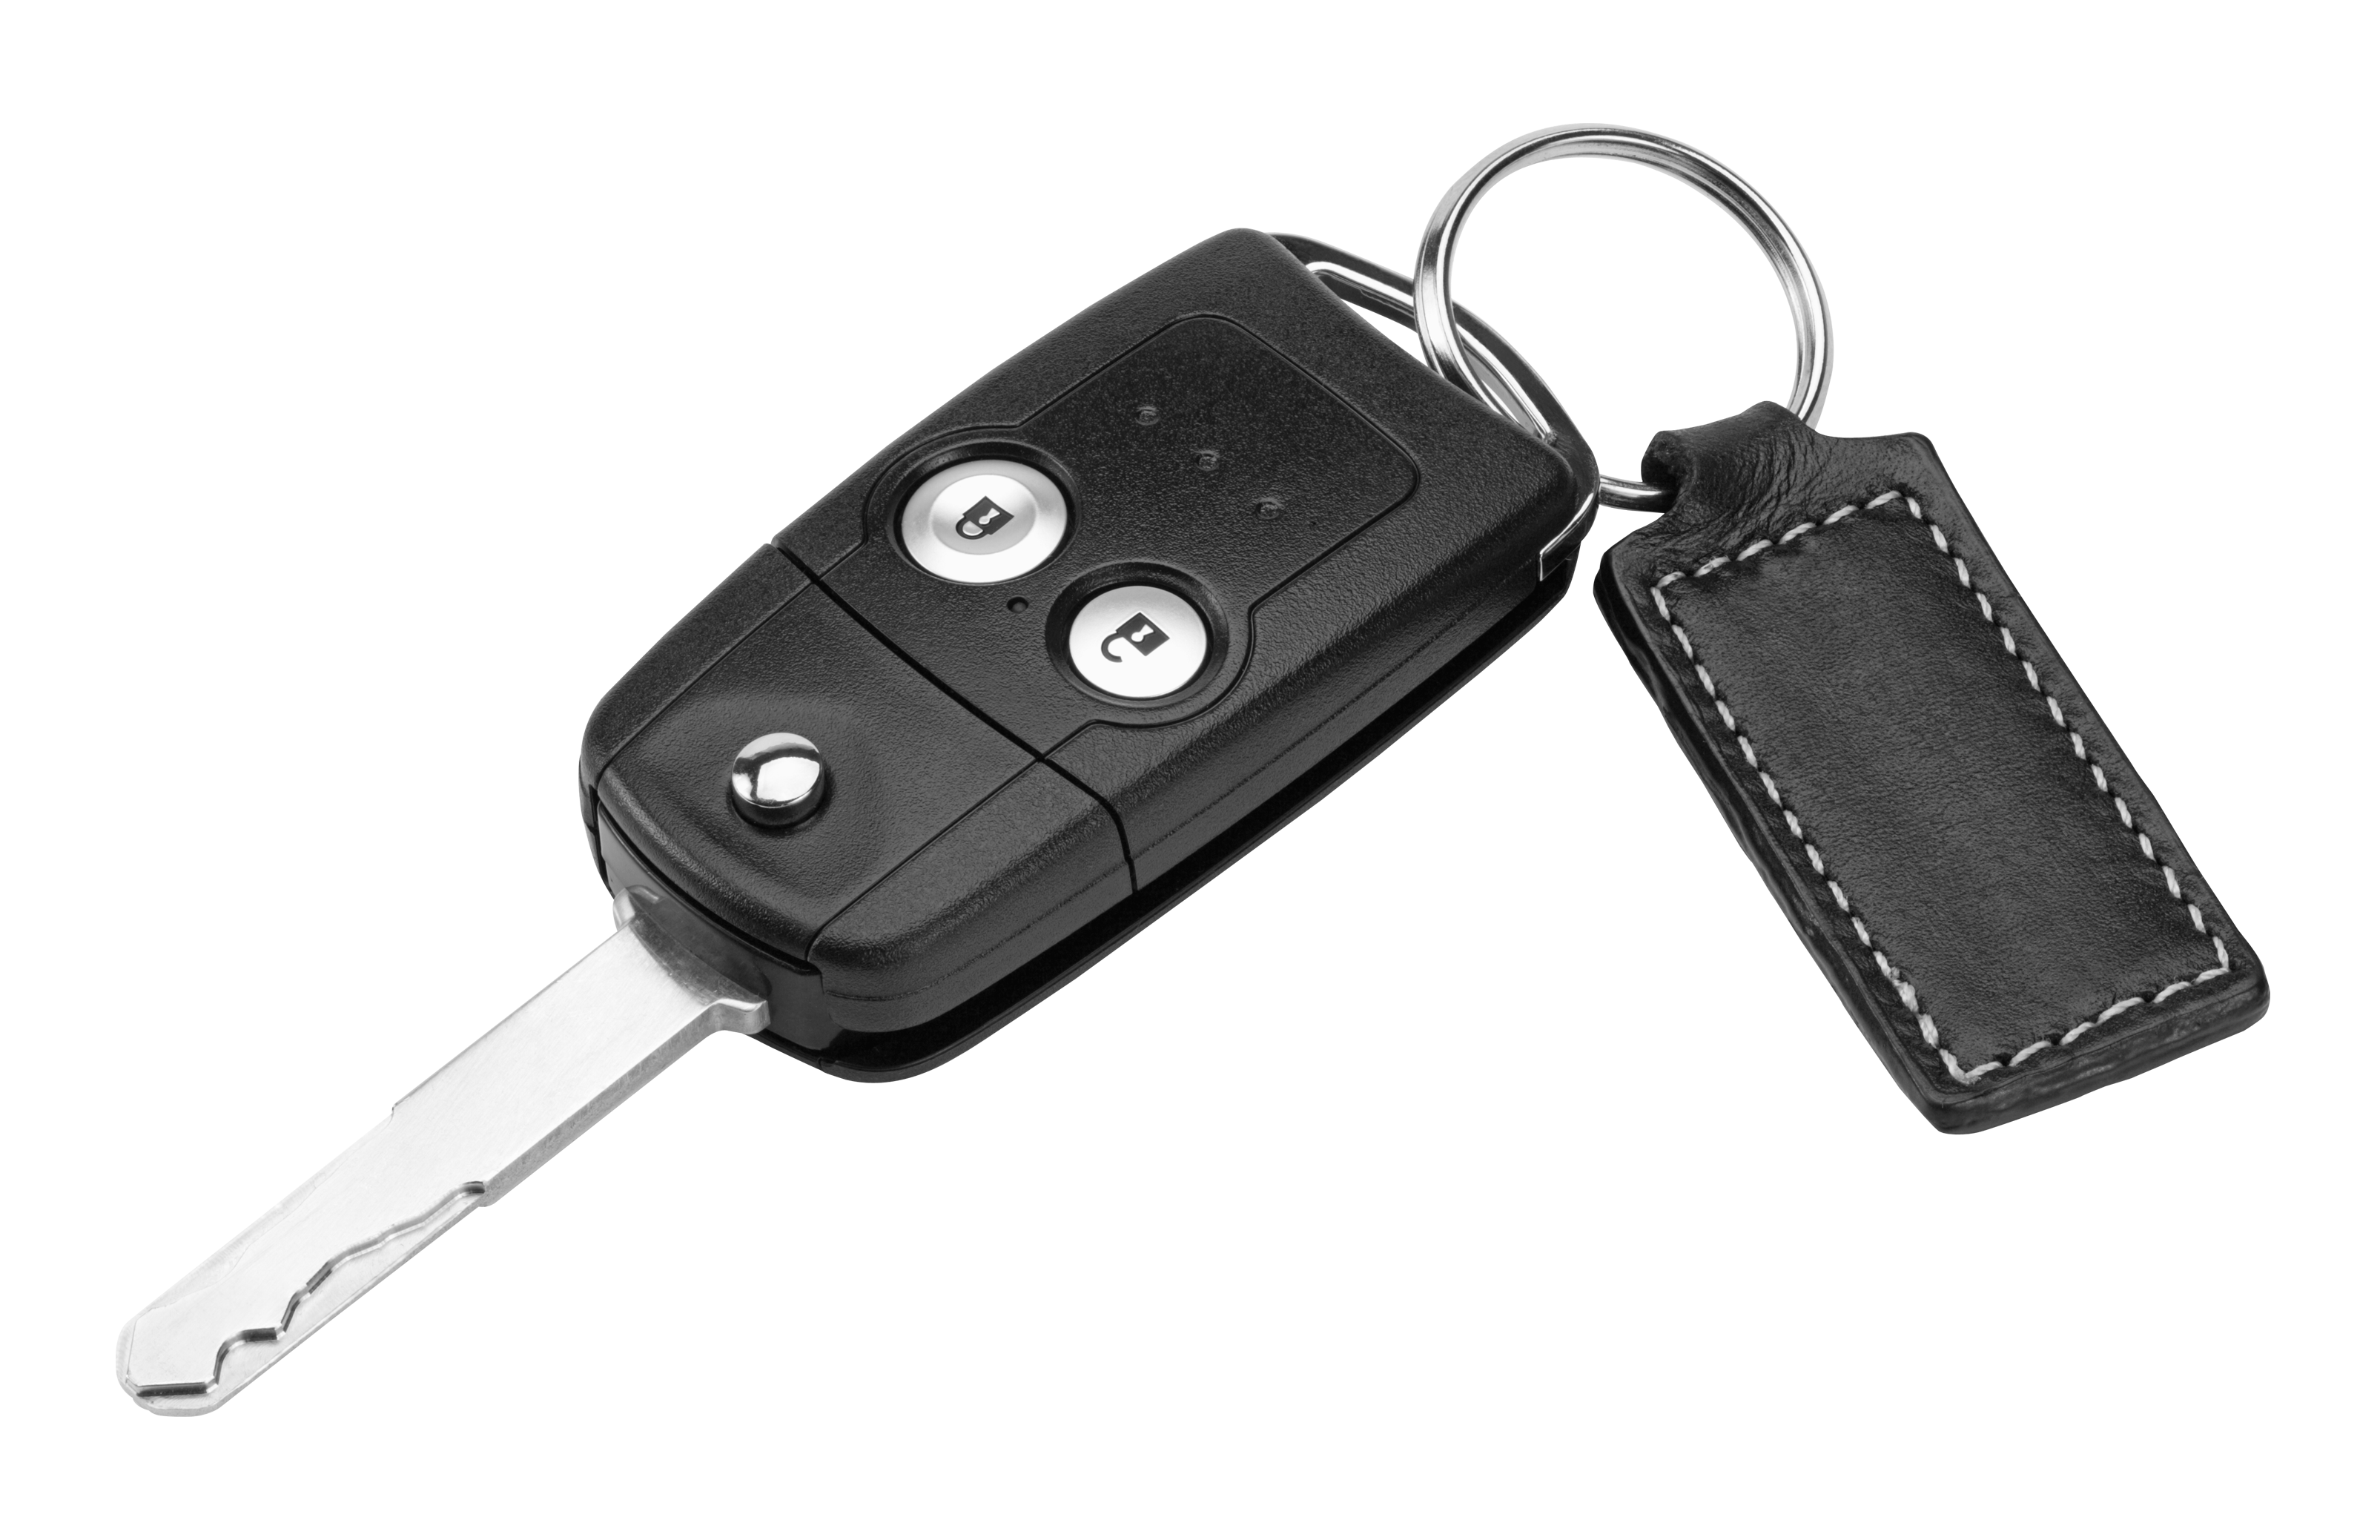 Car keys white background png. Key image purepng free